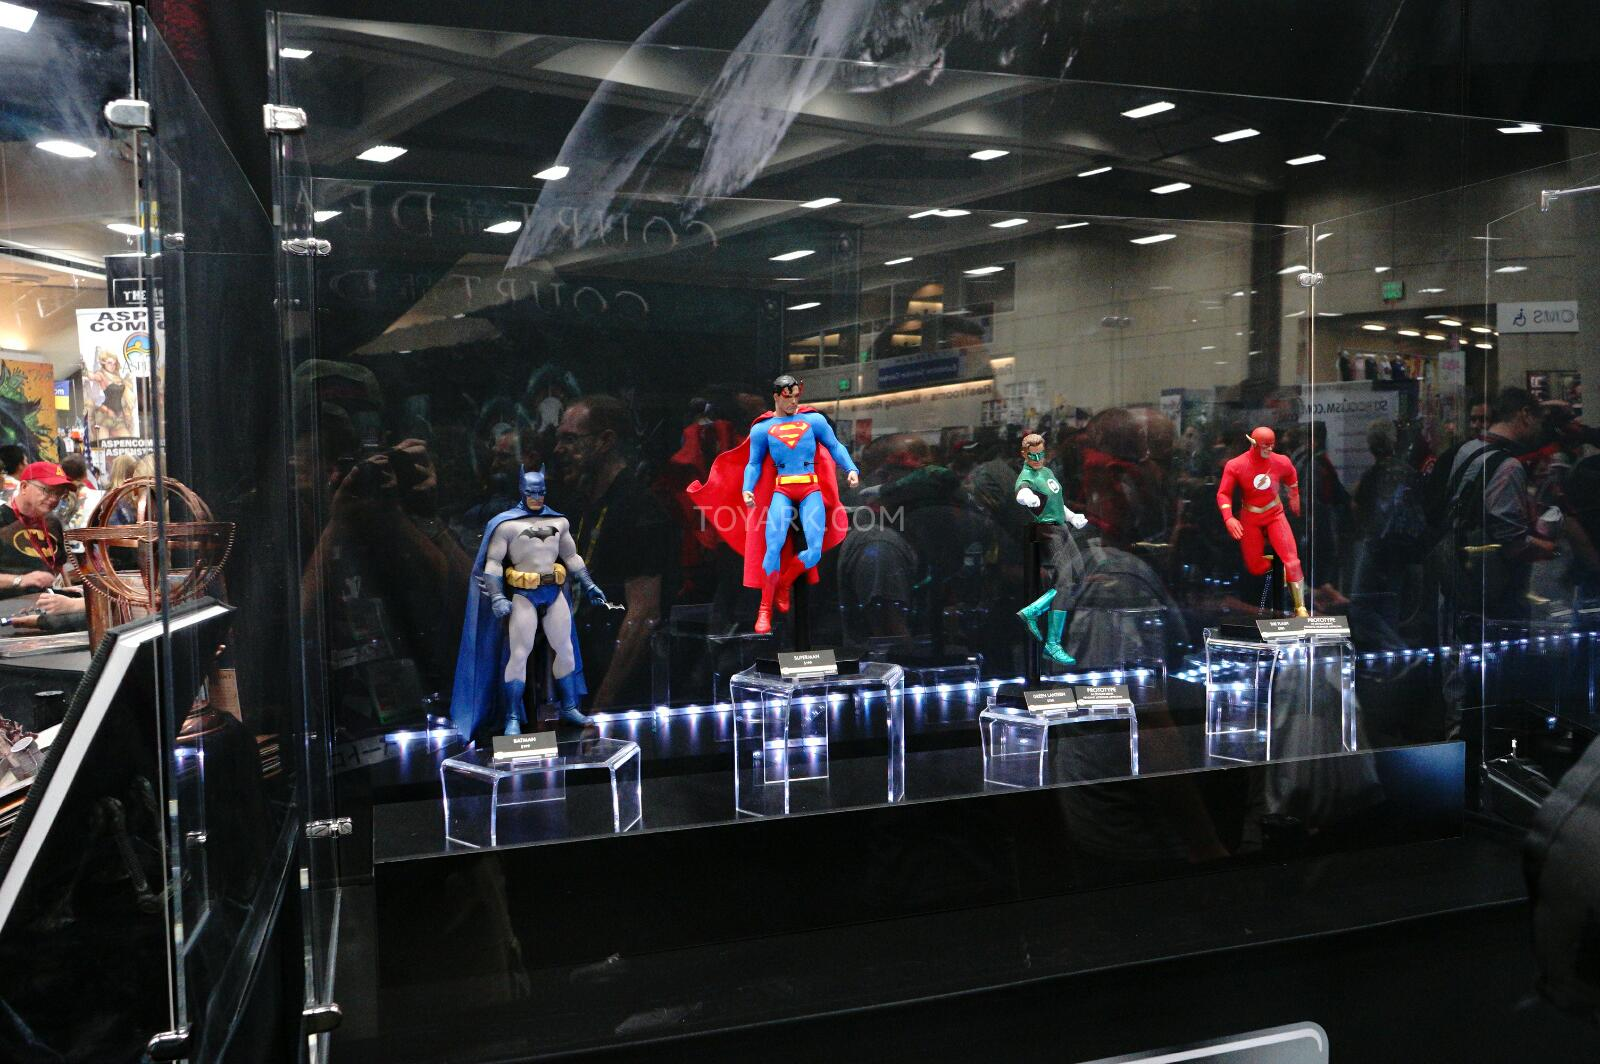 [Sideshow] DC Comics: Superman Sixth Scale - LANÇADO!!! - Página 2 SDCC-2014-Sideshow-DC-Comics-Sixth-Scale-Figures-001